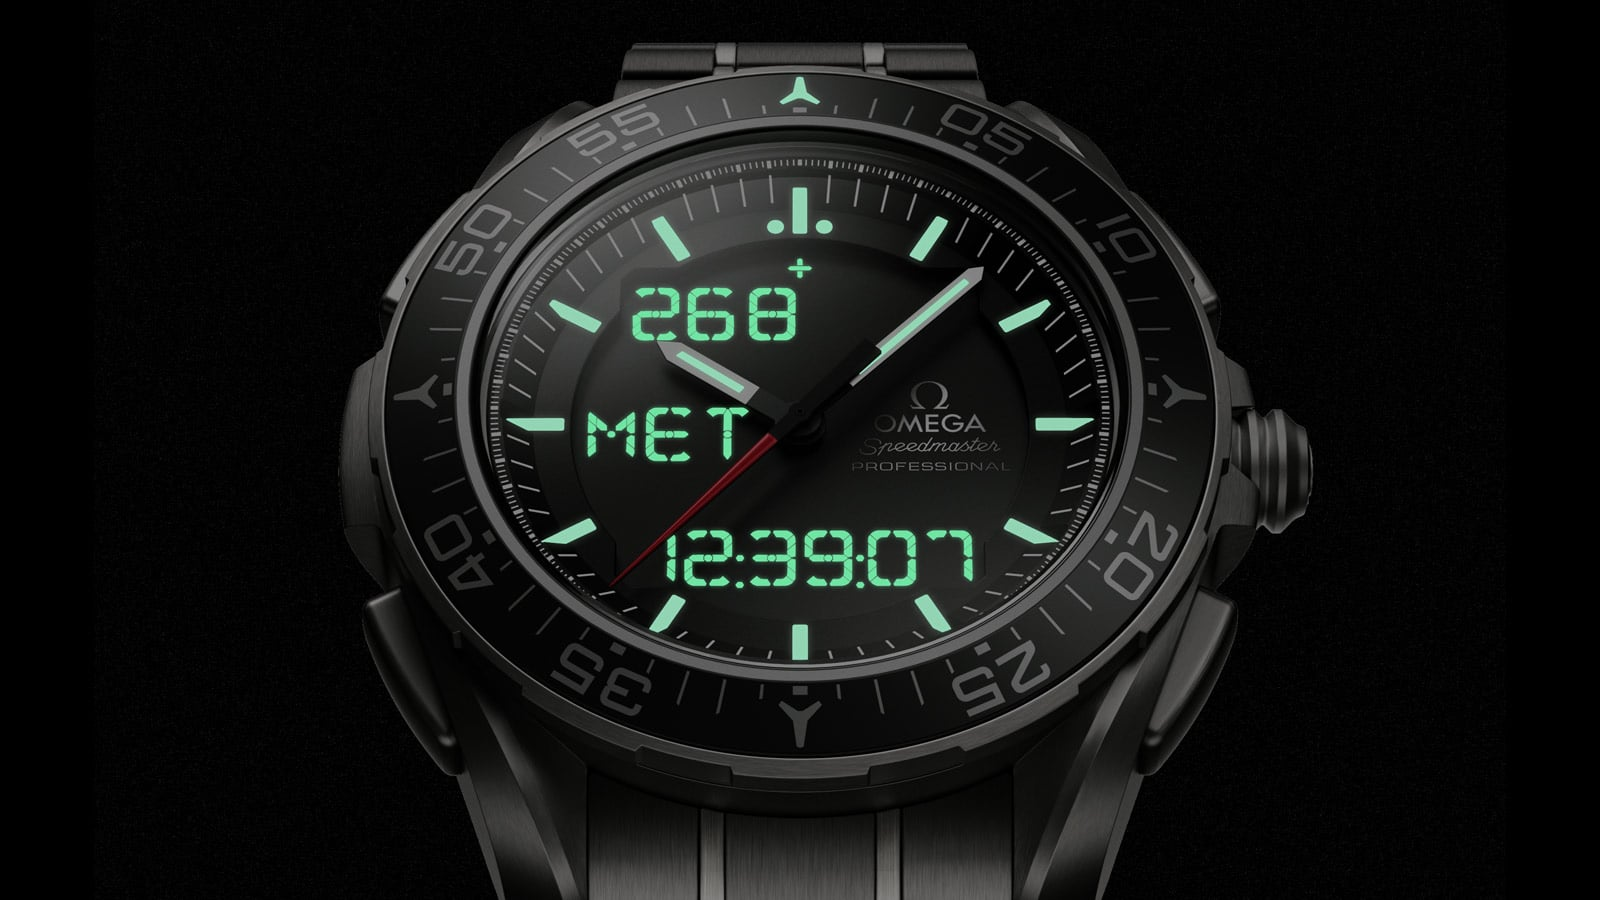 Close-up view of the Omega SPEEDMASTER SKYWALKER X-33 case in the night with the LCD opening in the dial back-illuminated